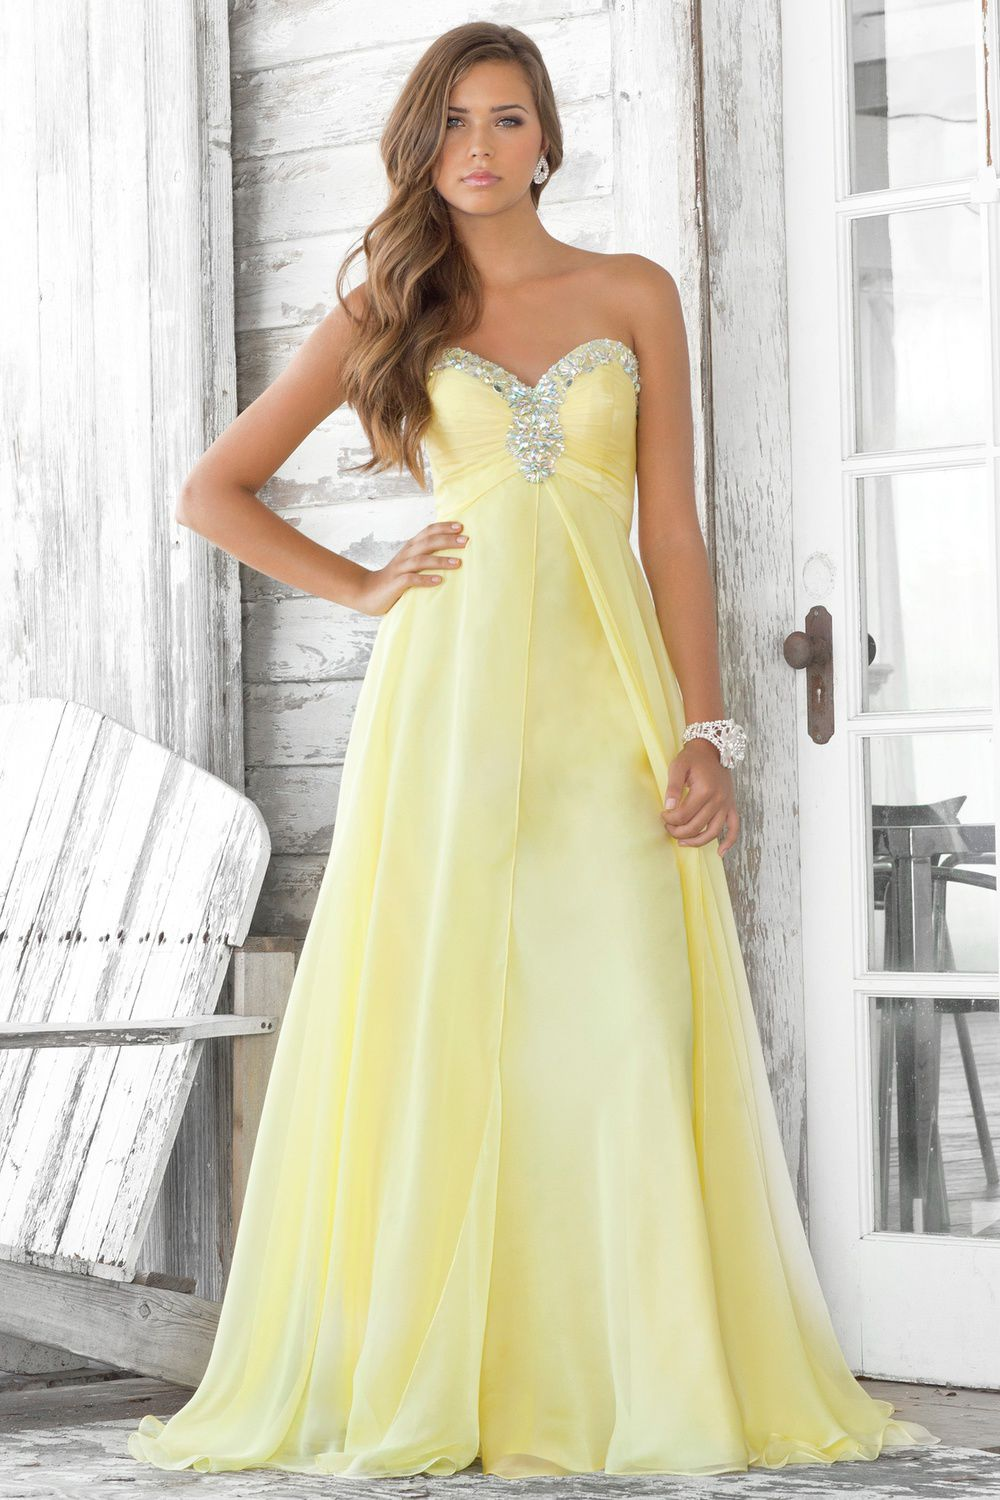 Buy 2013 A-Line Absorbing Best Sell Fresh Infatuate Sweetheart Neckline Ruffle Beads Working Column Chiffon Floor Length Prom Dress Online Cheap Prices